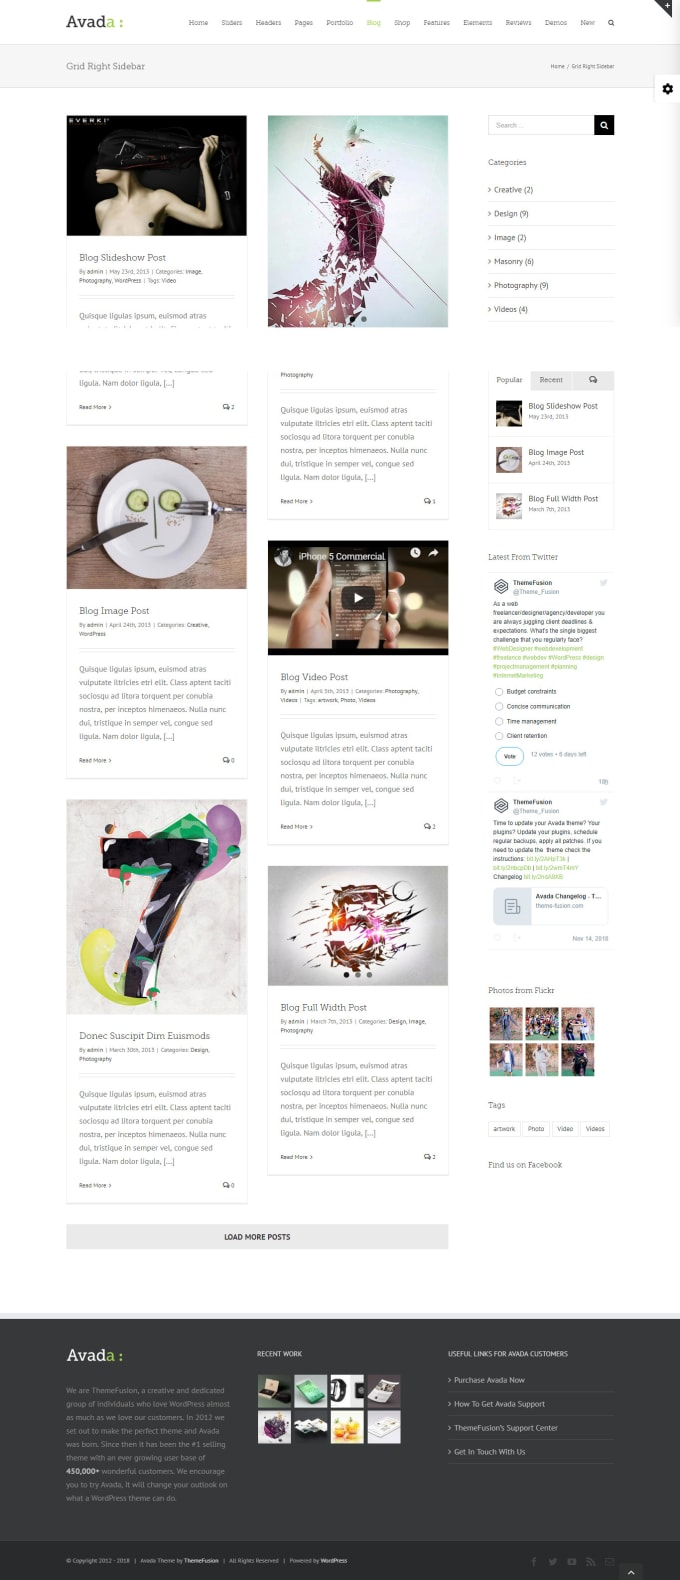 tauseefaslam : I will designs wordpress website for business for $40 on  www fiverr com